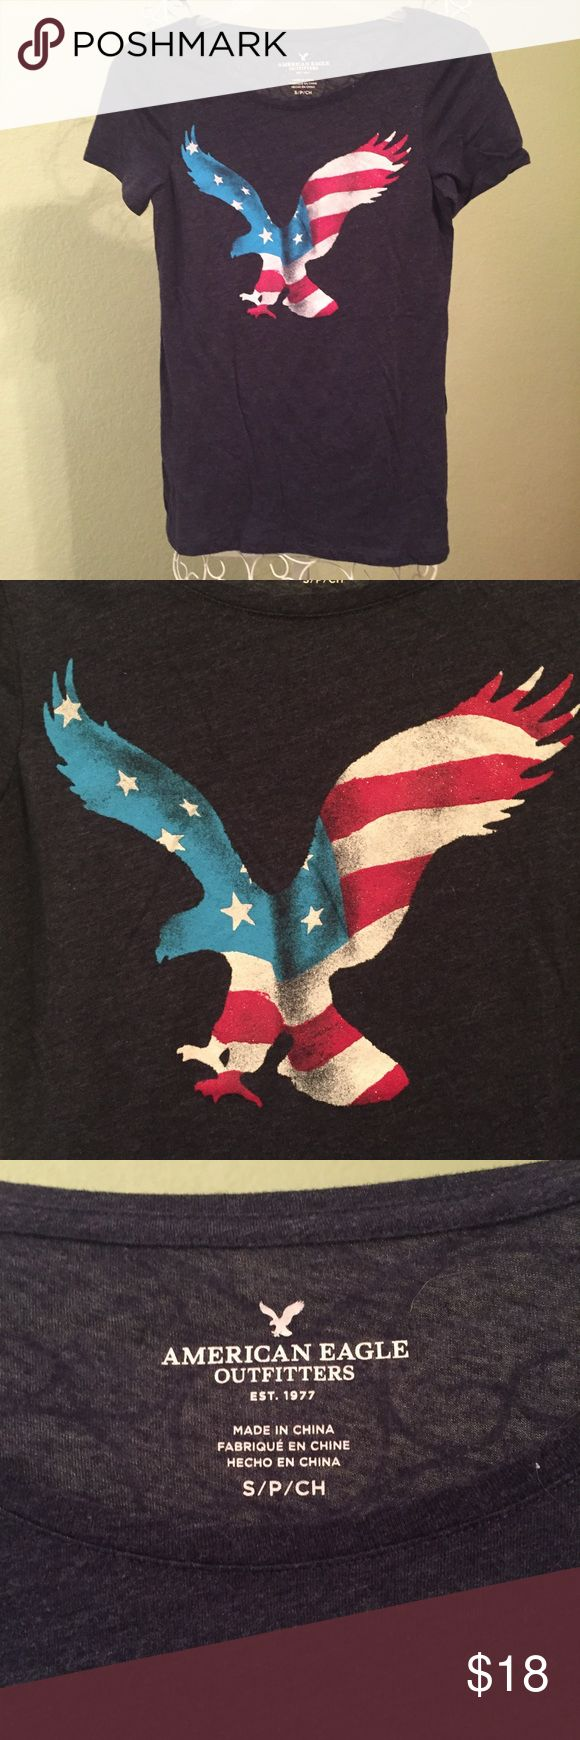 AE USA AMERICAN EAGLE SHIRT patriotic Size small, worn twice, good used condition, please ask if you need more infos/pics before buying to avoid problems!😀 American Eagle Outfitters Tops Tees - Short Sleeve